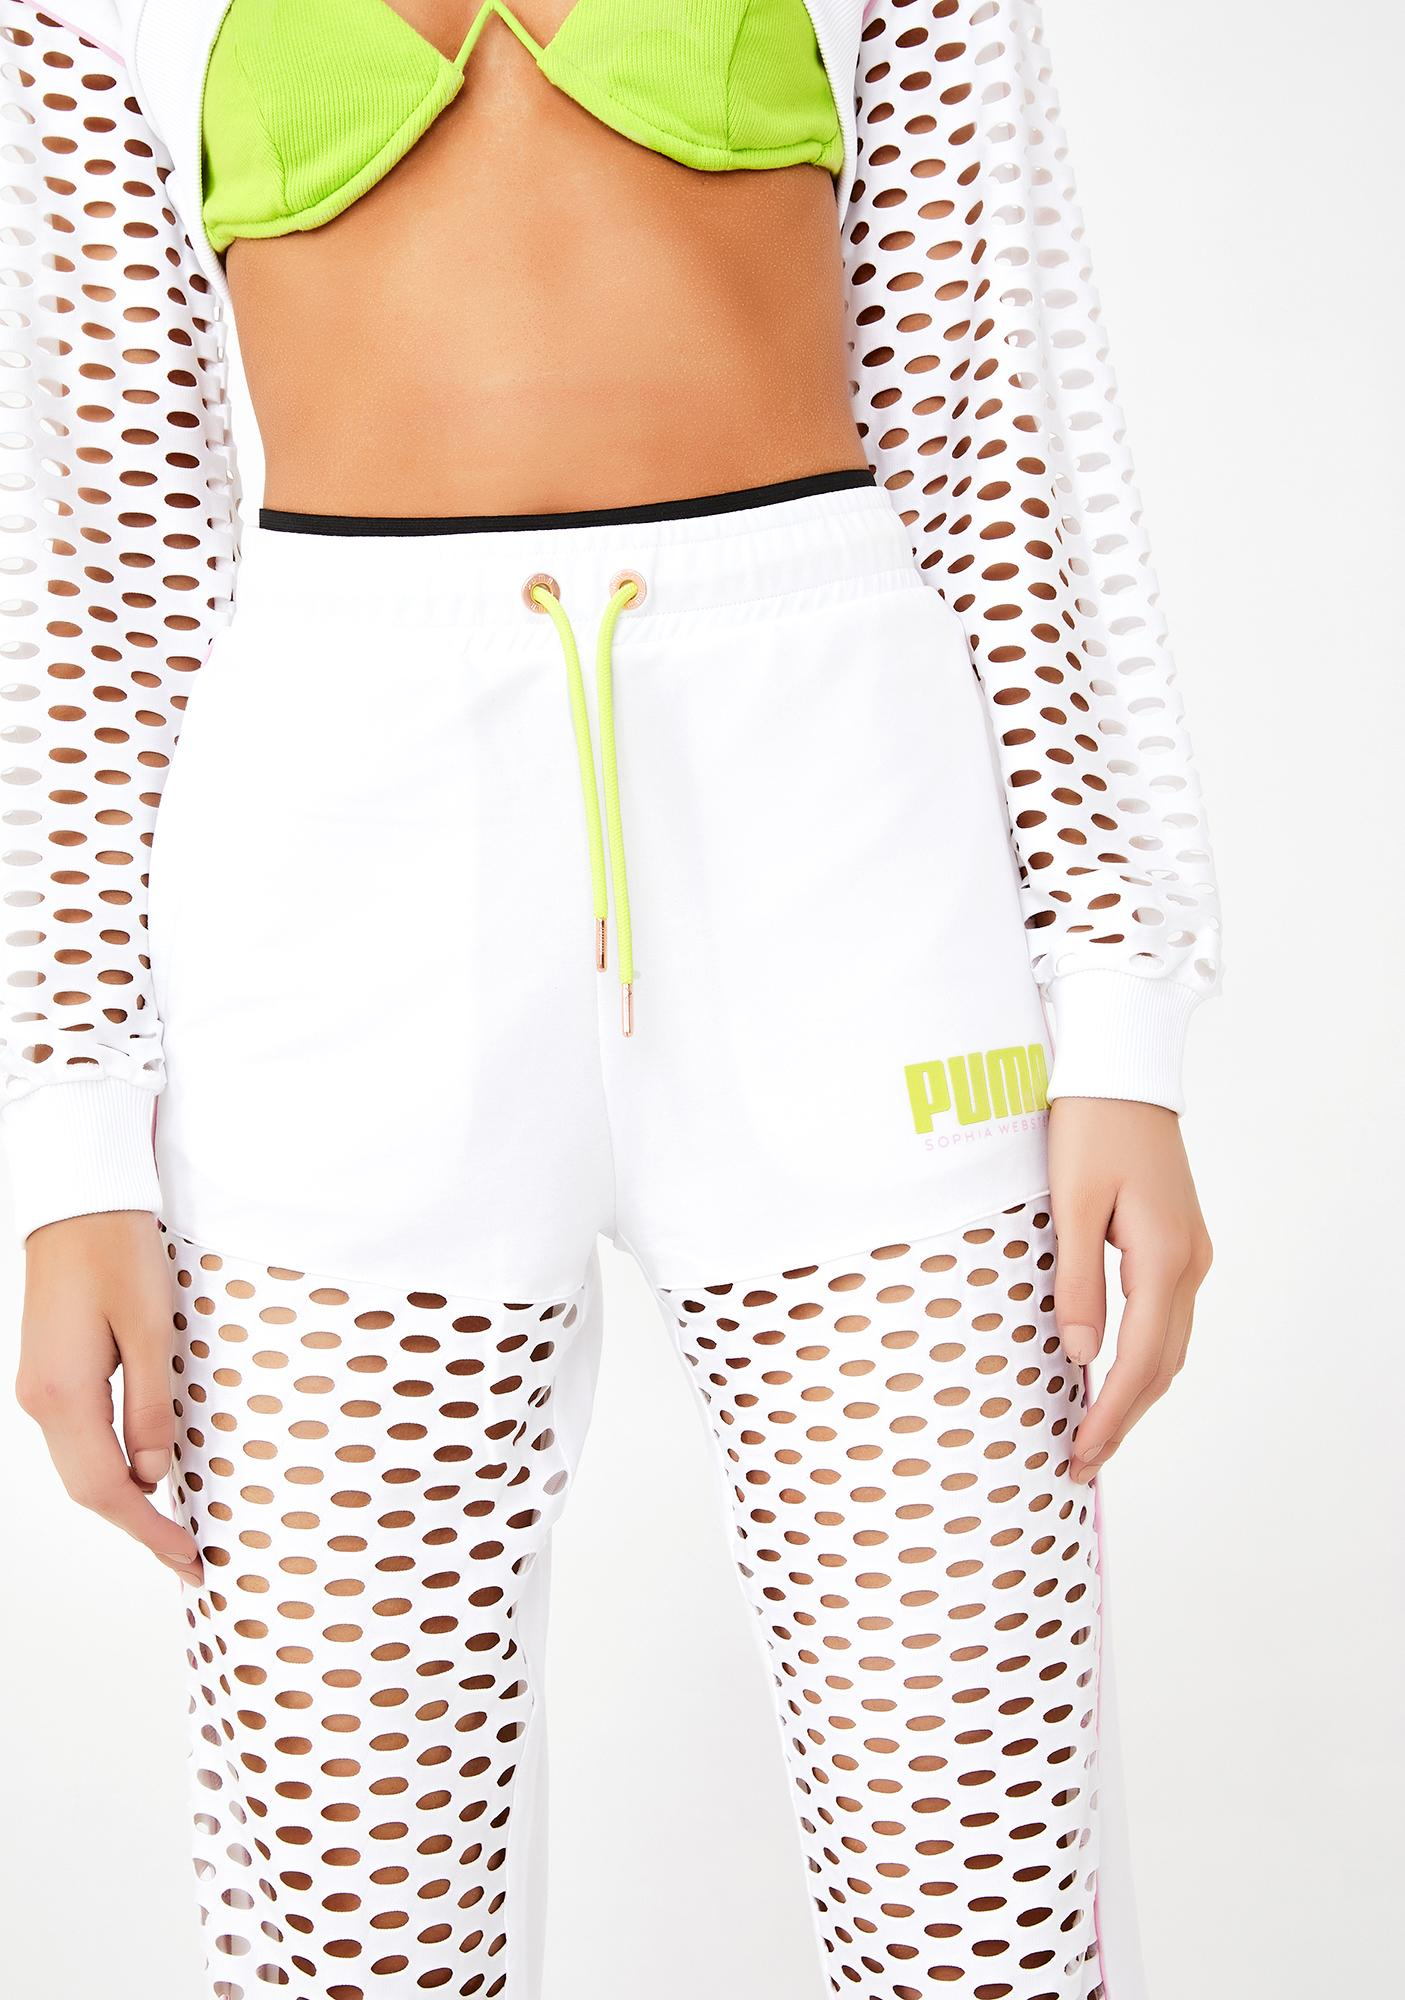 PUMA X Sophie Webster Sweatpants